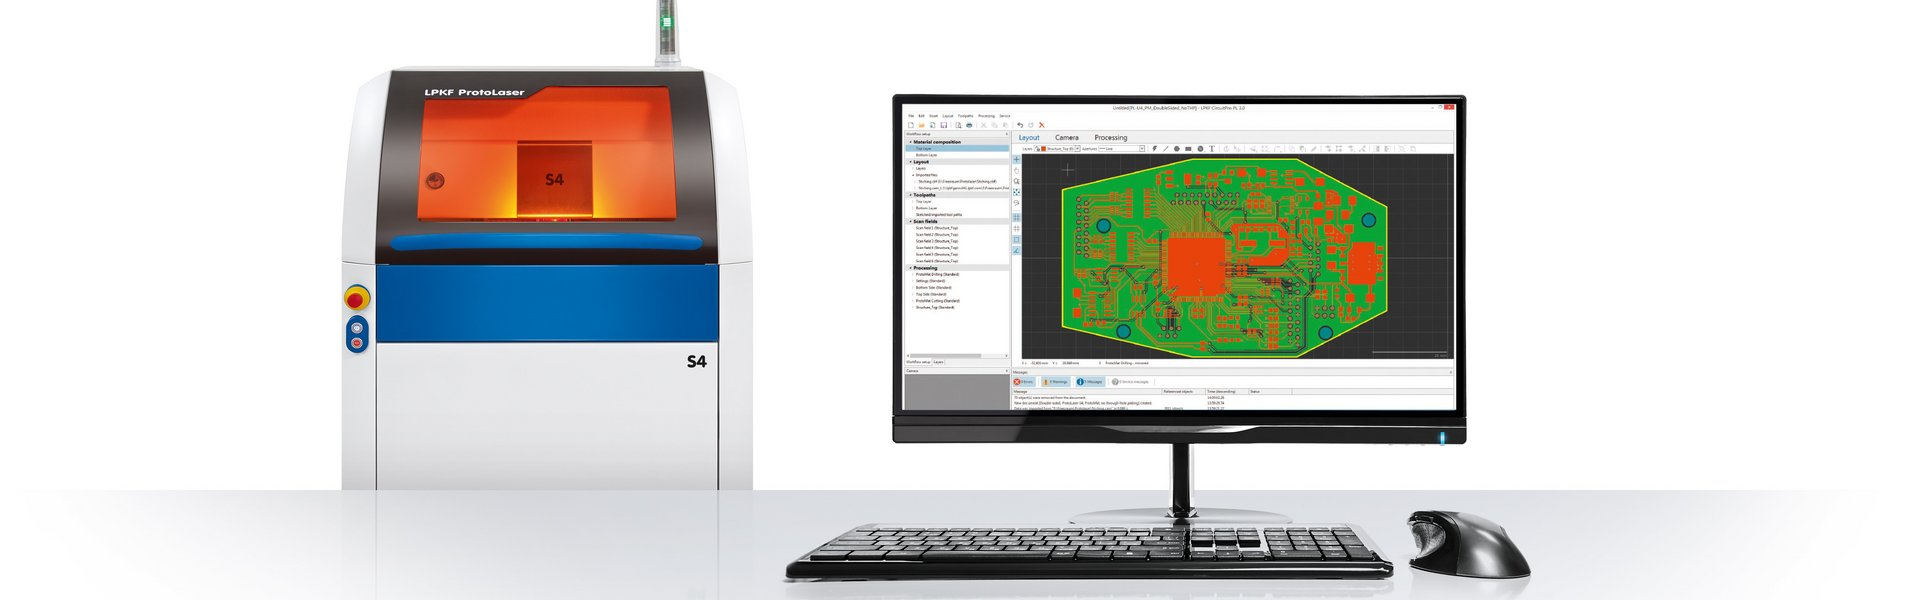 Intelligent Software for PCB Prototyping